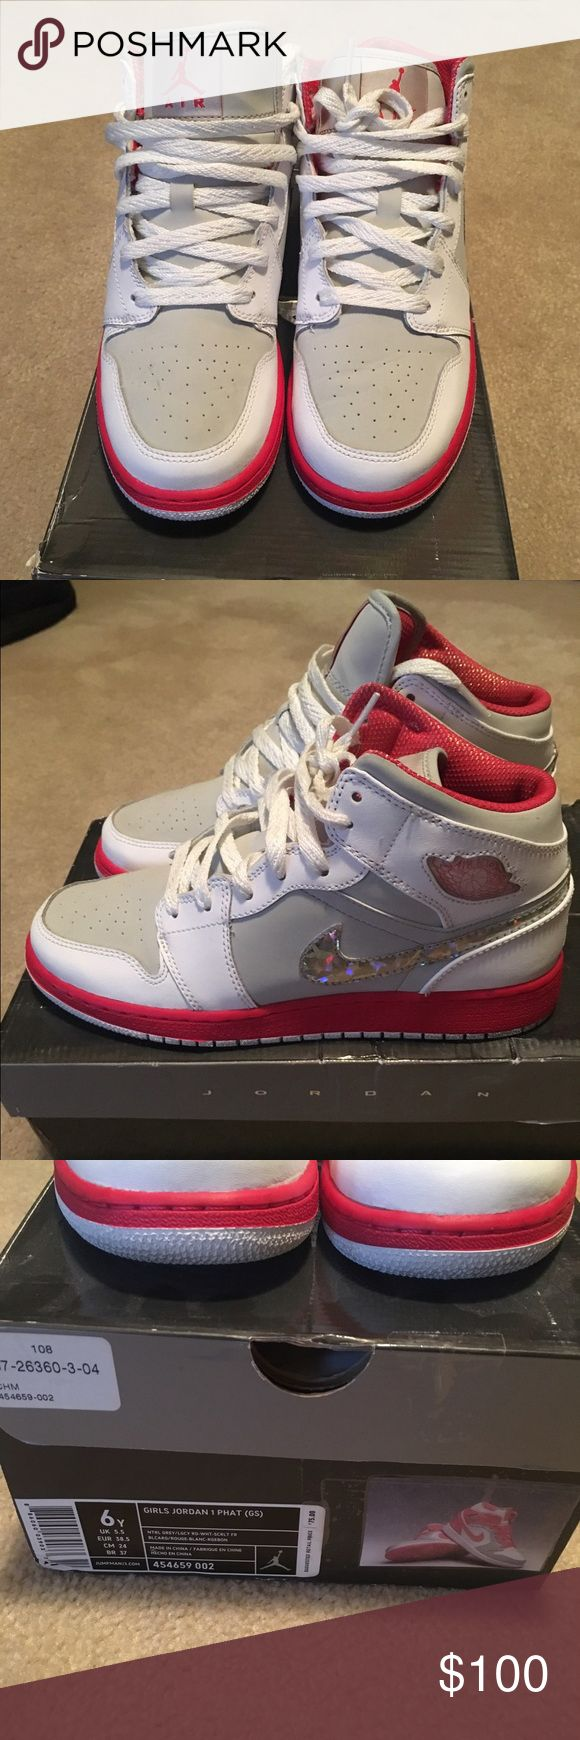 Nike Air Jordan Retro 1 Nike Air Jordan retro 1; white & pink with sparkly metallic Nike sign; mid top; orig box; 9/10 condition; great condition; size 6Youth (big kids, grade school) equivalent to women size 8 Jordan Shoes Sneakers